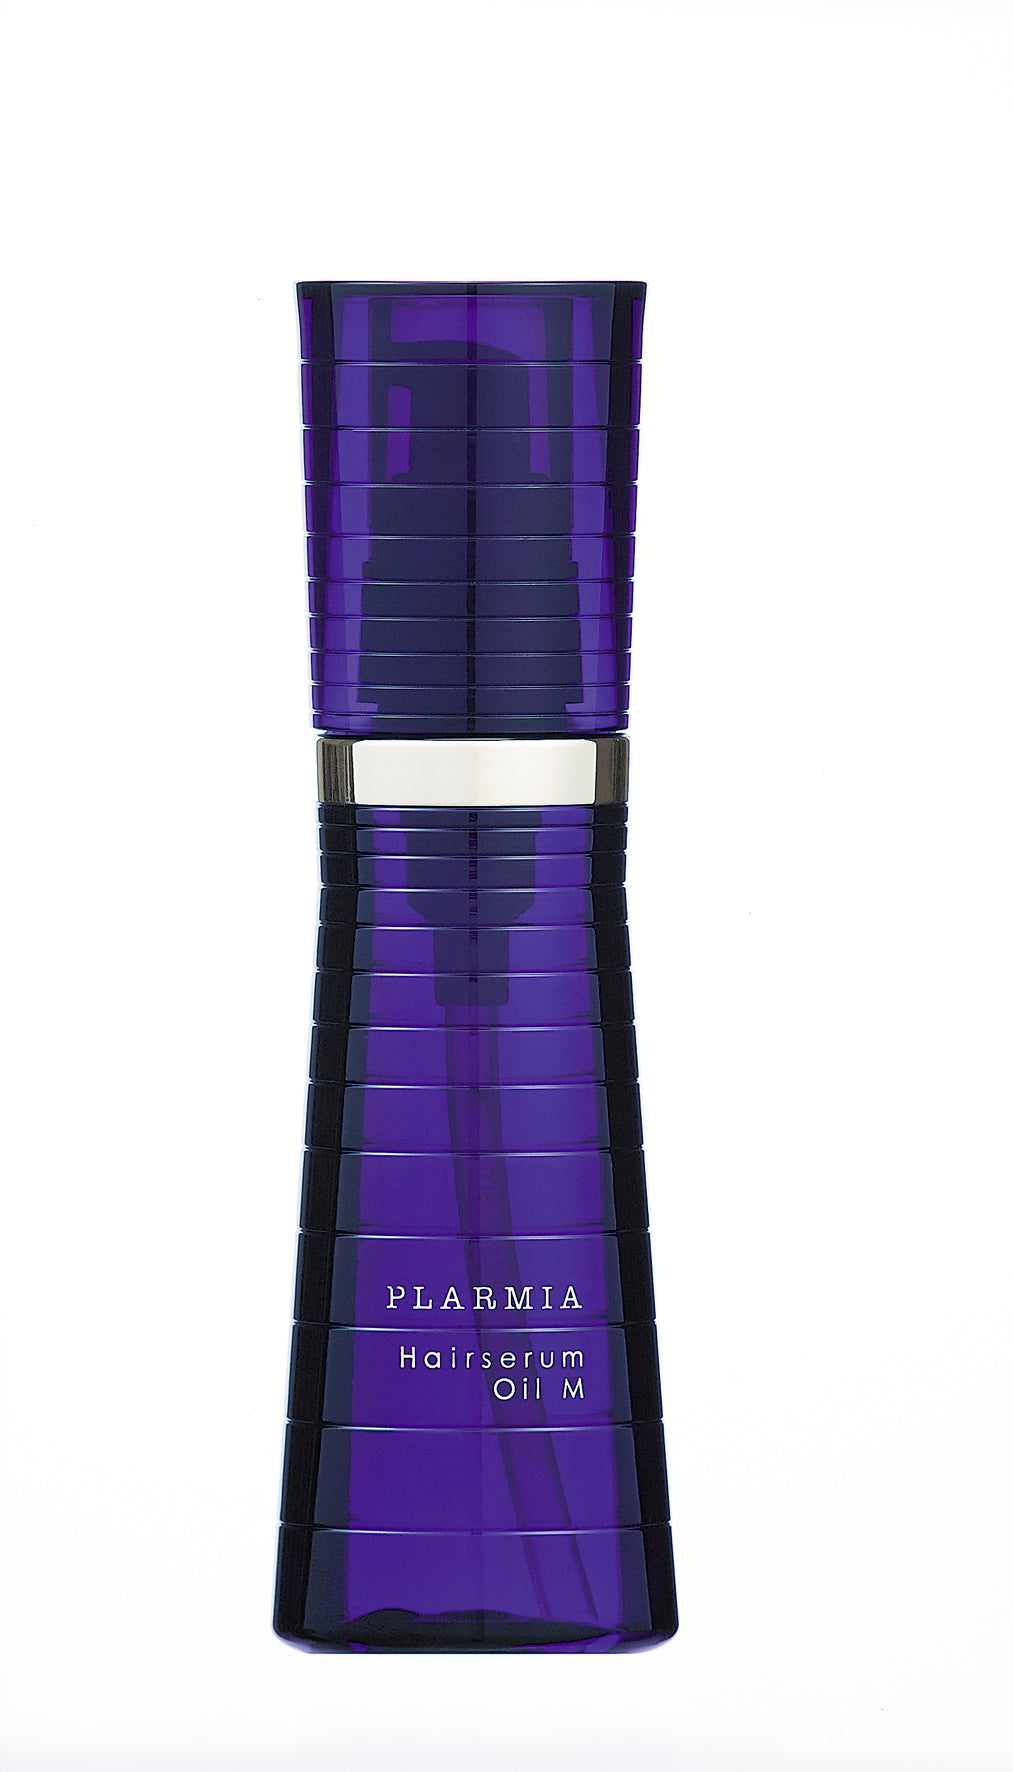 PLARMIA HAIRSERUM OIL M 120ML